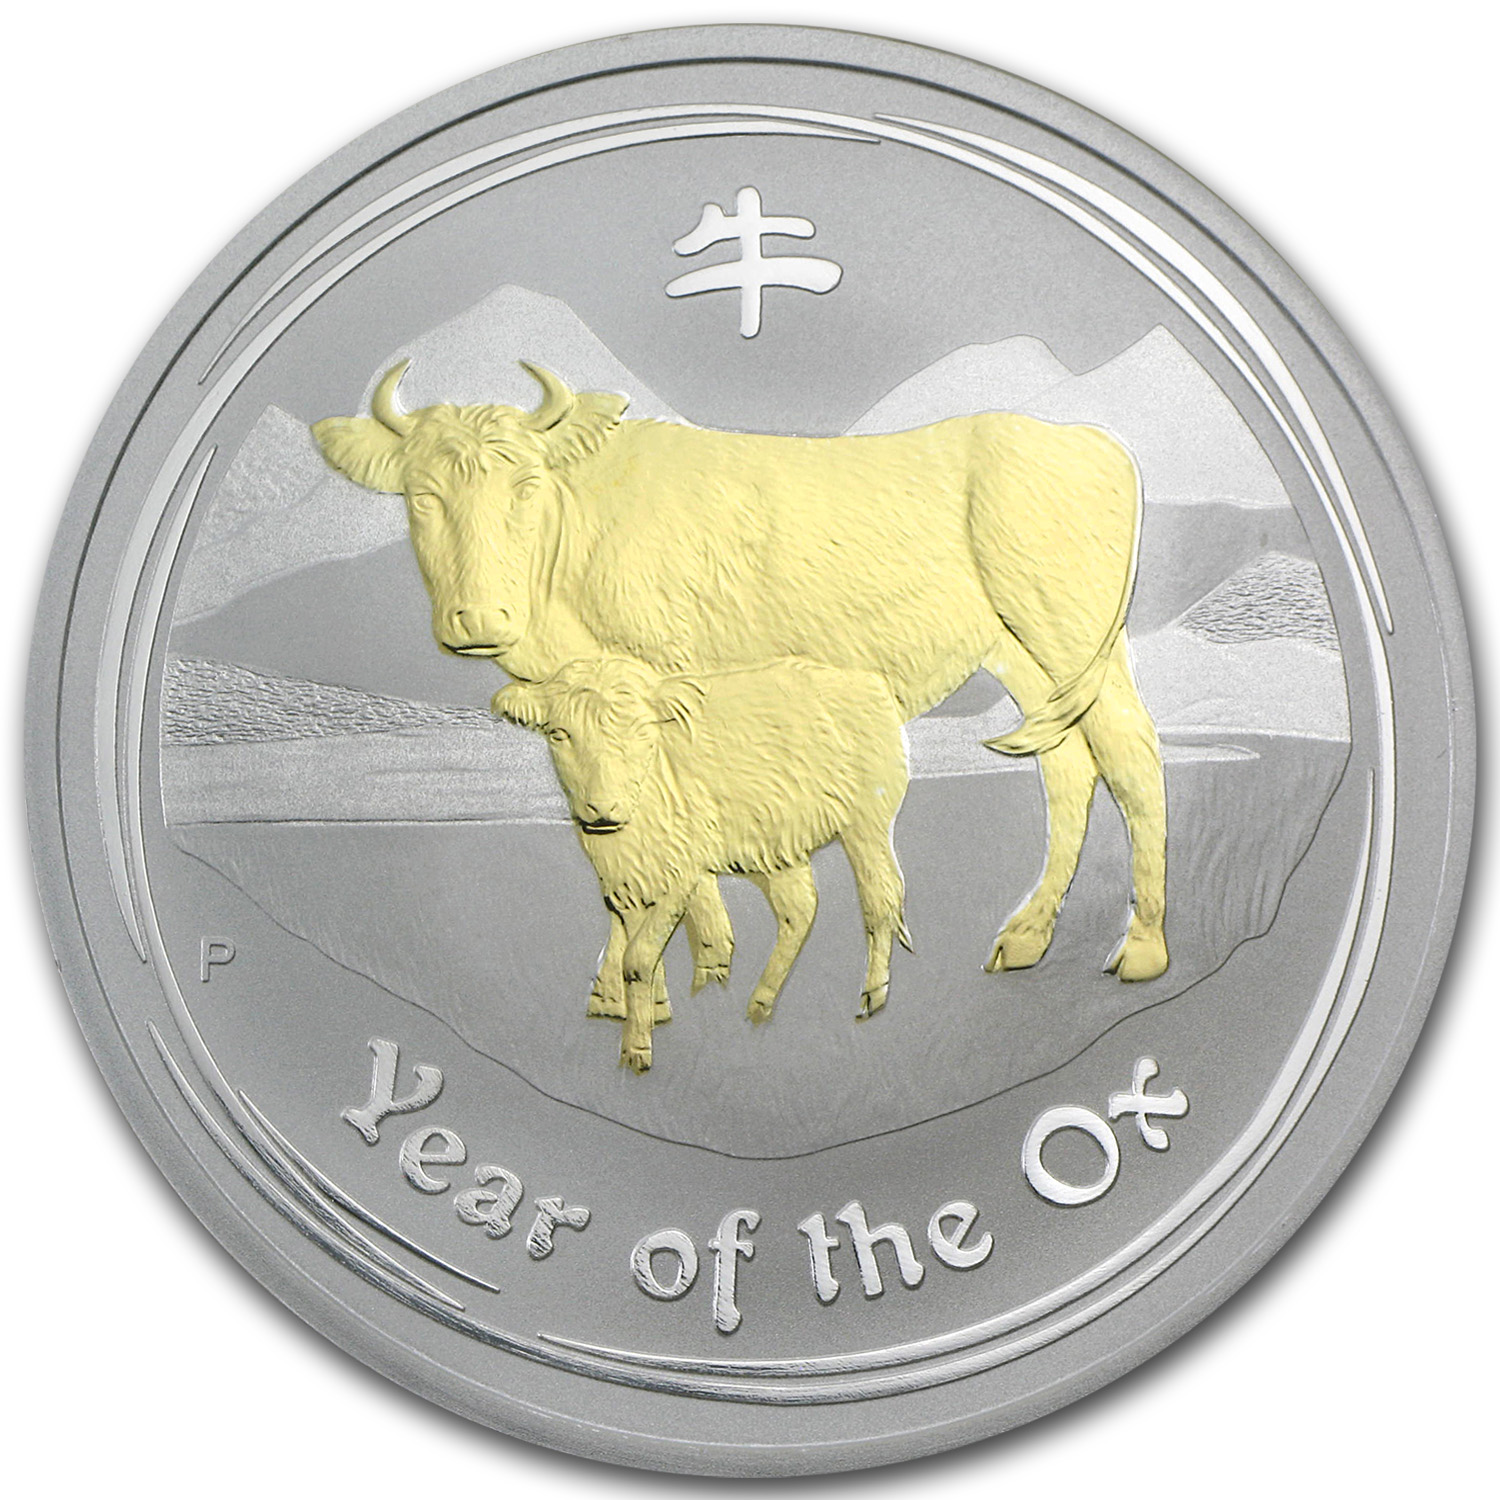 2009 Year of the Ox - 1 oz Gilded Silver Coin (SII) w/Box & CoA